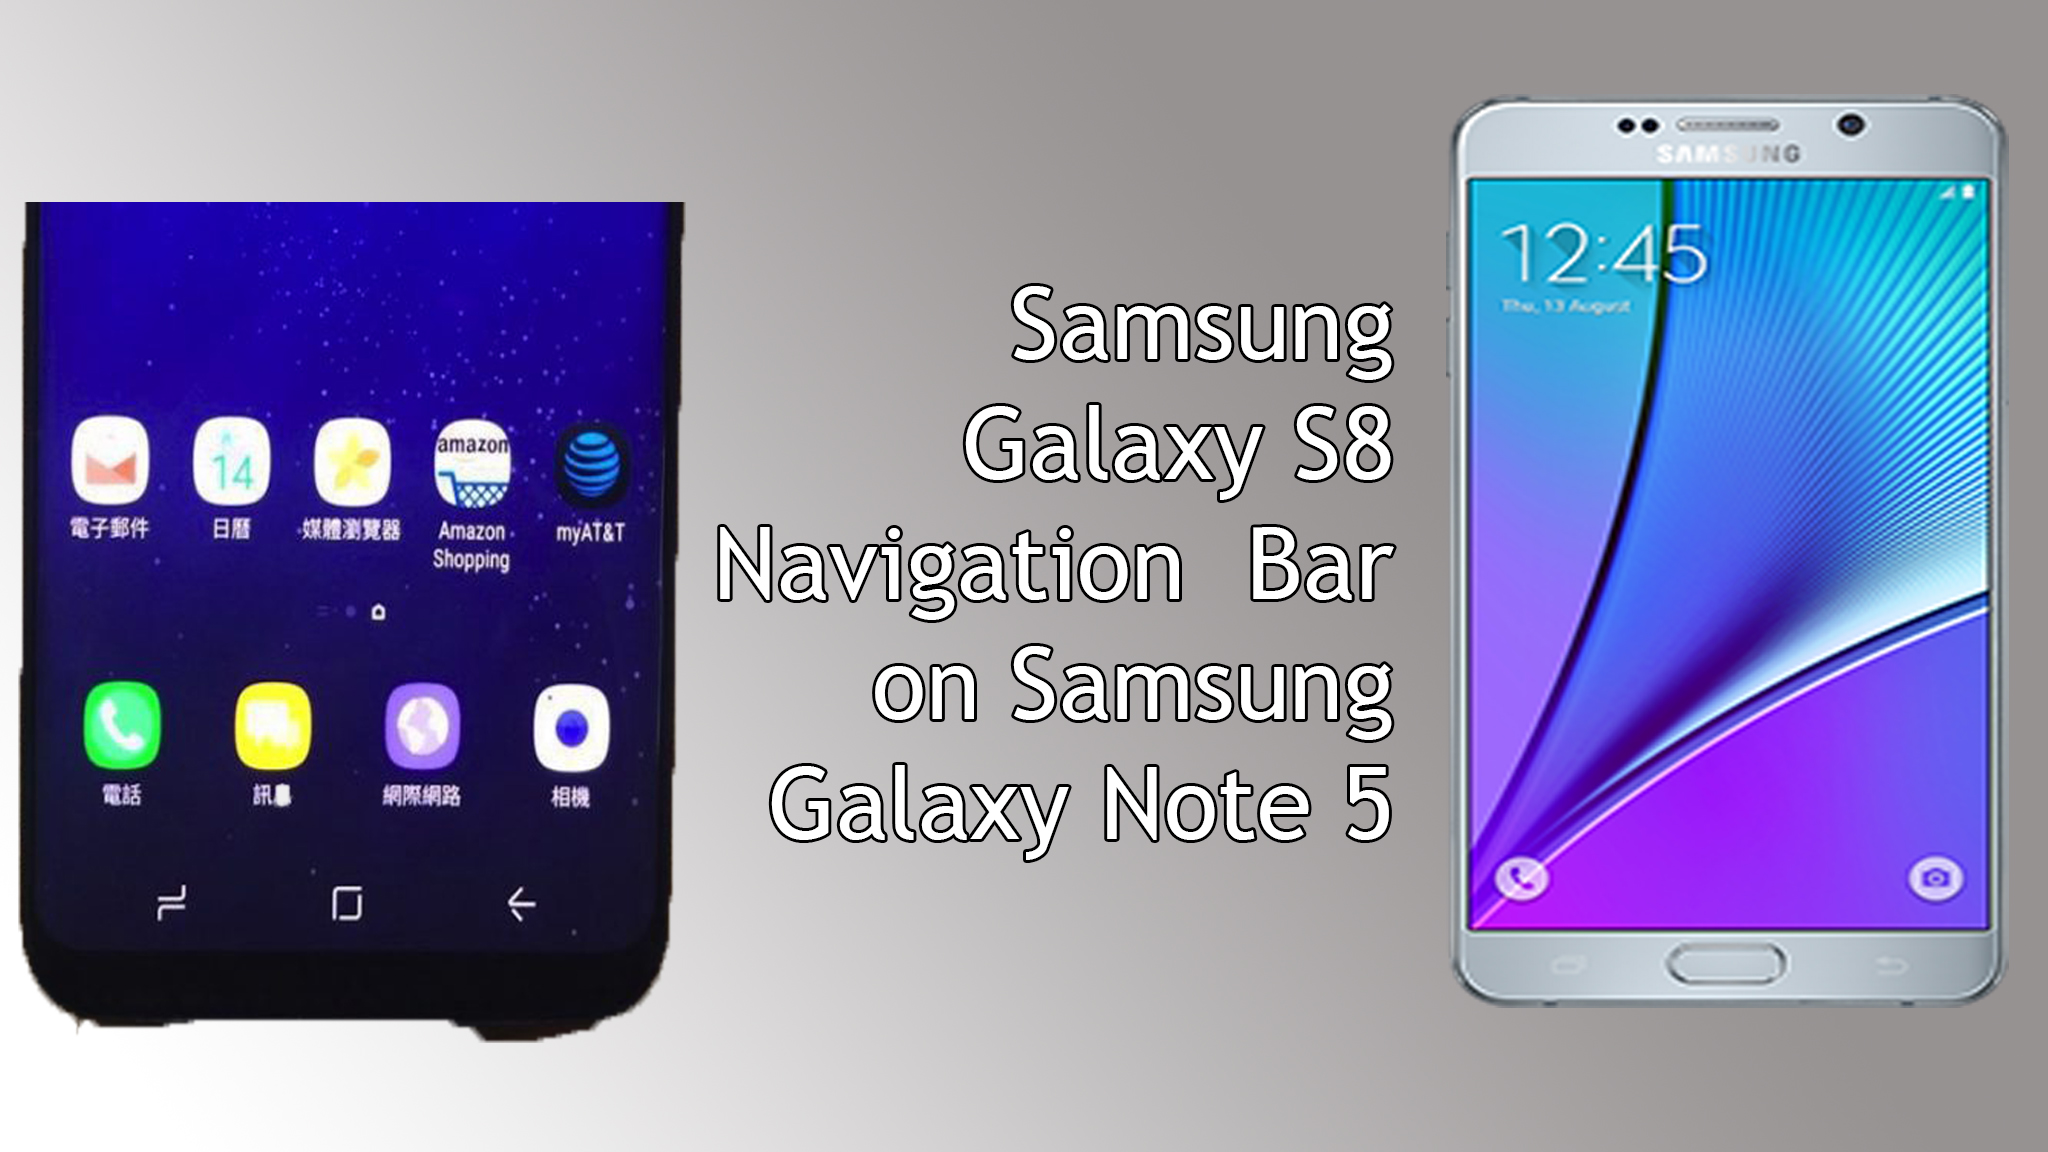 Get Samsung Galaxy S8 Plus Navigation Bar on Galaxy Note 5 (How-to)